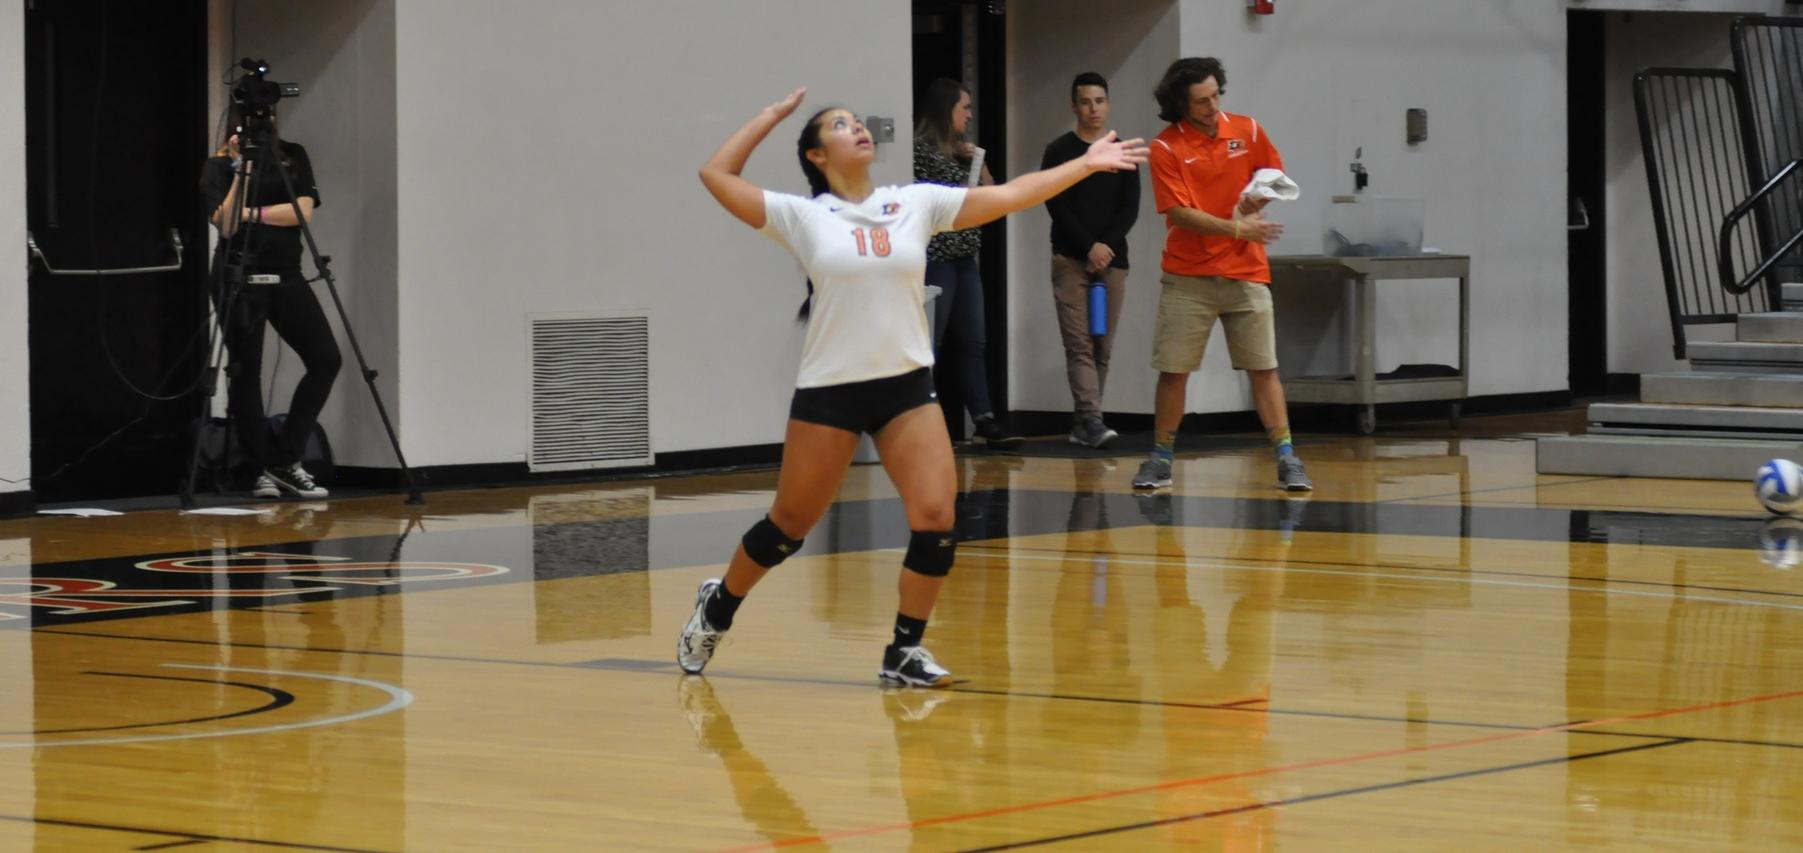 Lewis & Clark unable to earn one set in loss to Pacific